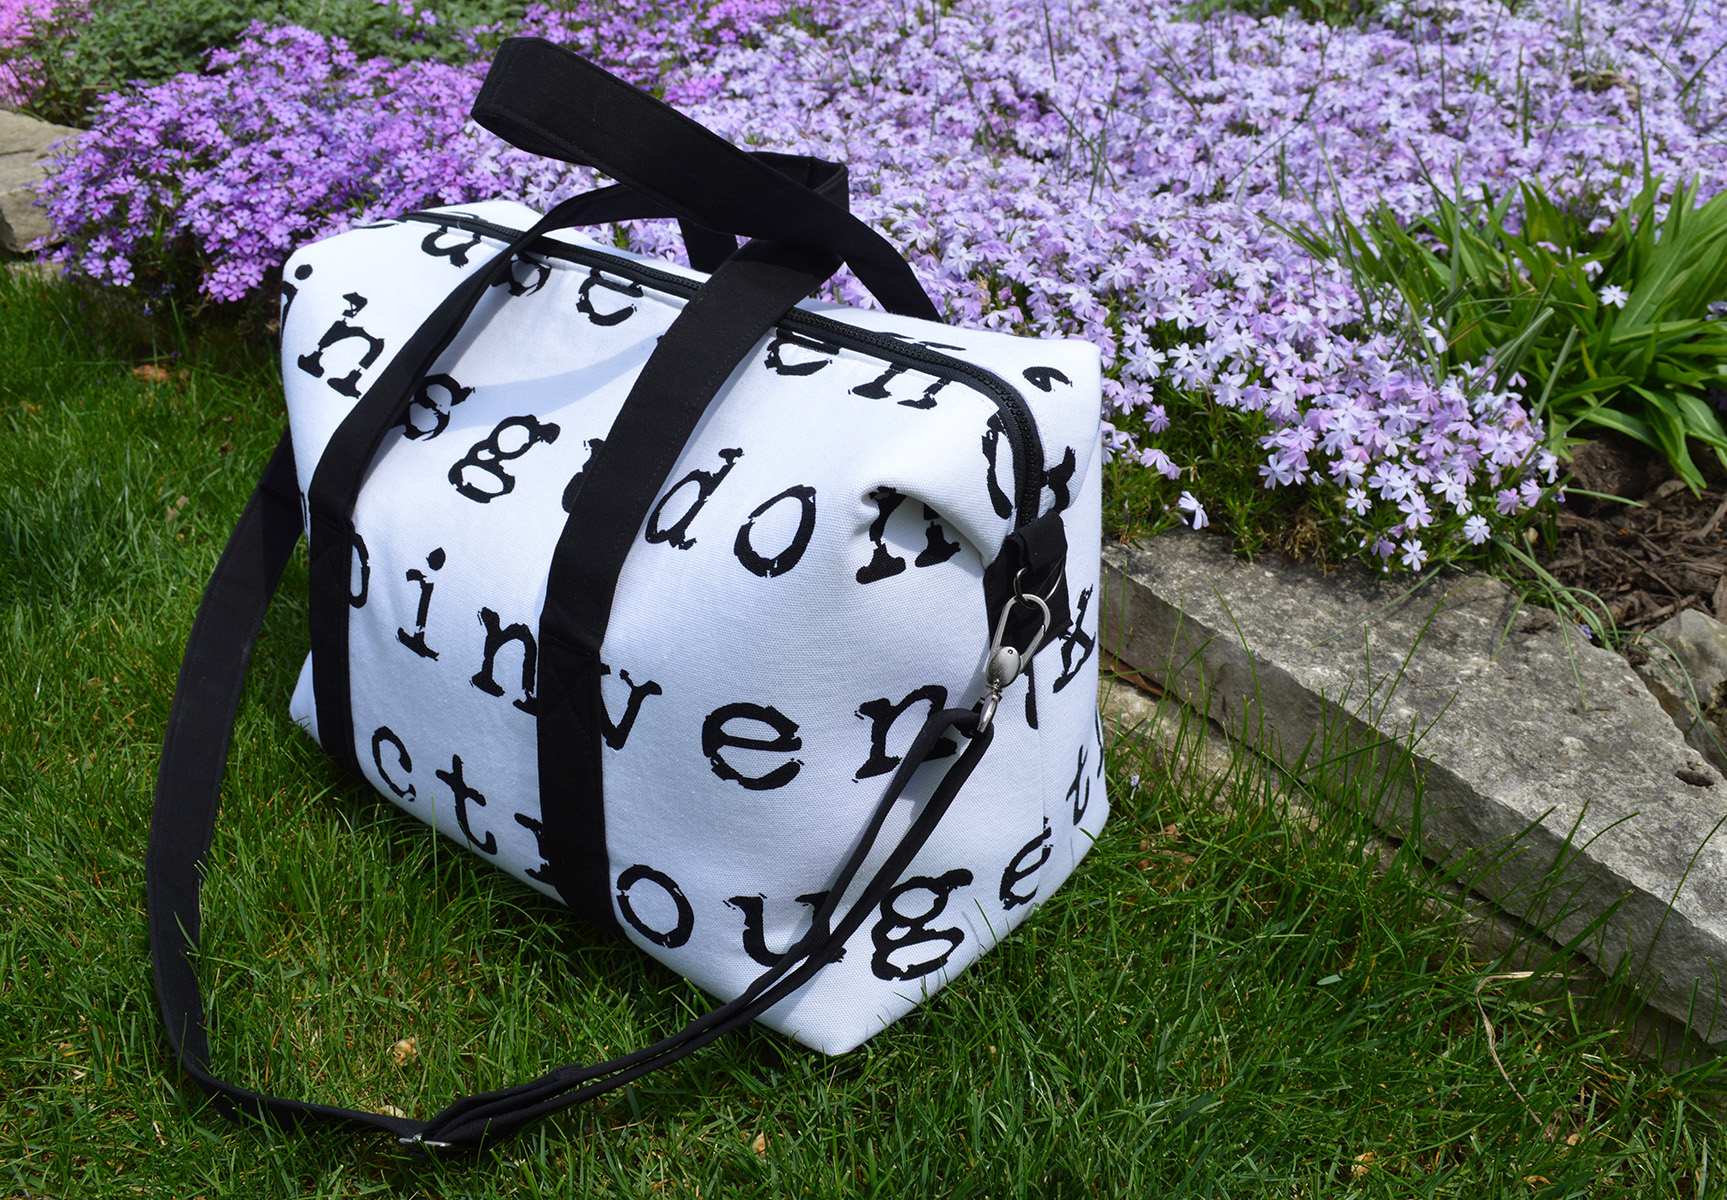 Sew Sweetness Emblem Duffle Bag, sewn by Sharon of Color Girl Quilts